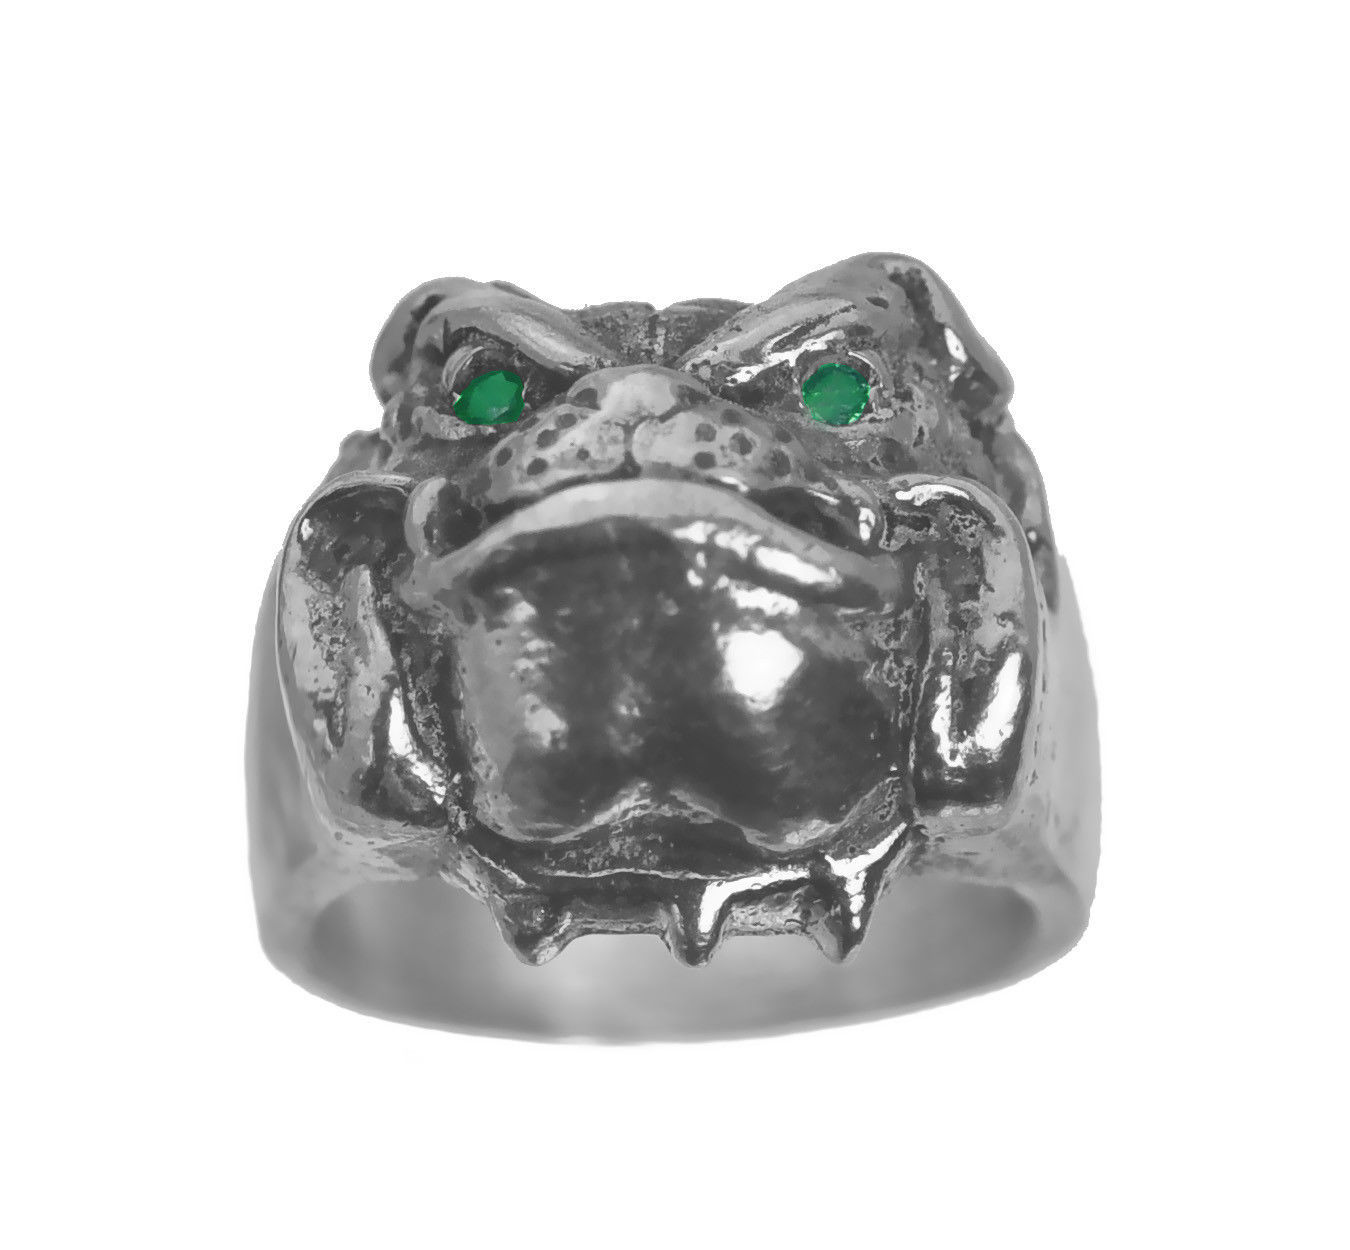 Solid Heavy Bulldog Pug Dog Jewelry Sterling silver .925 ring Emerald eyes New